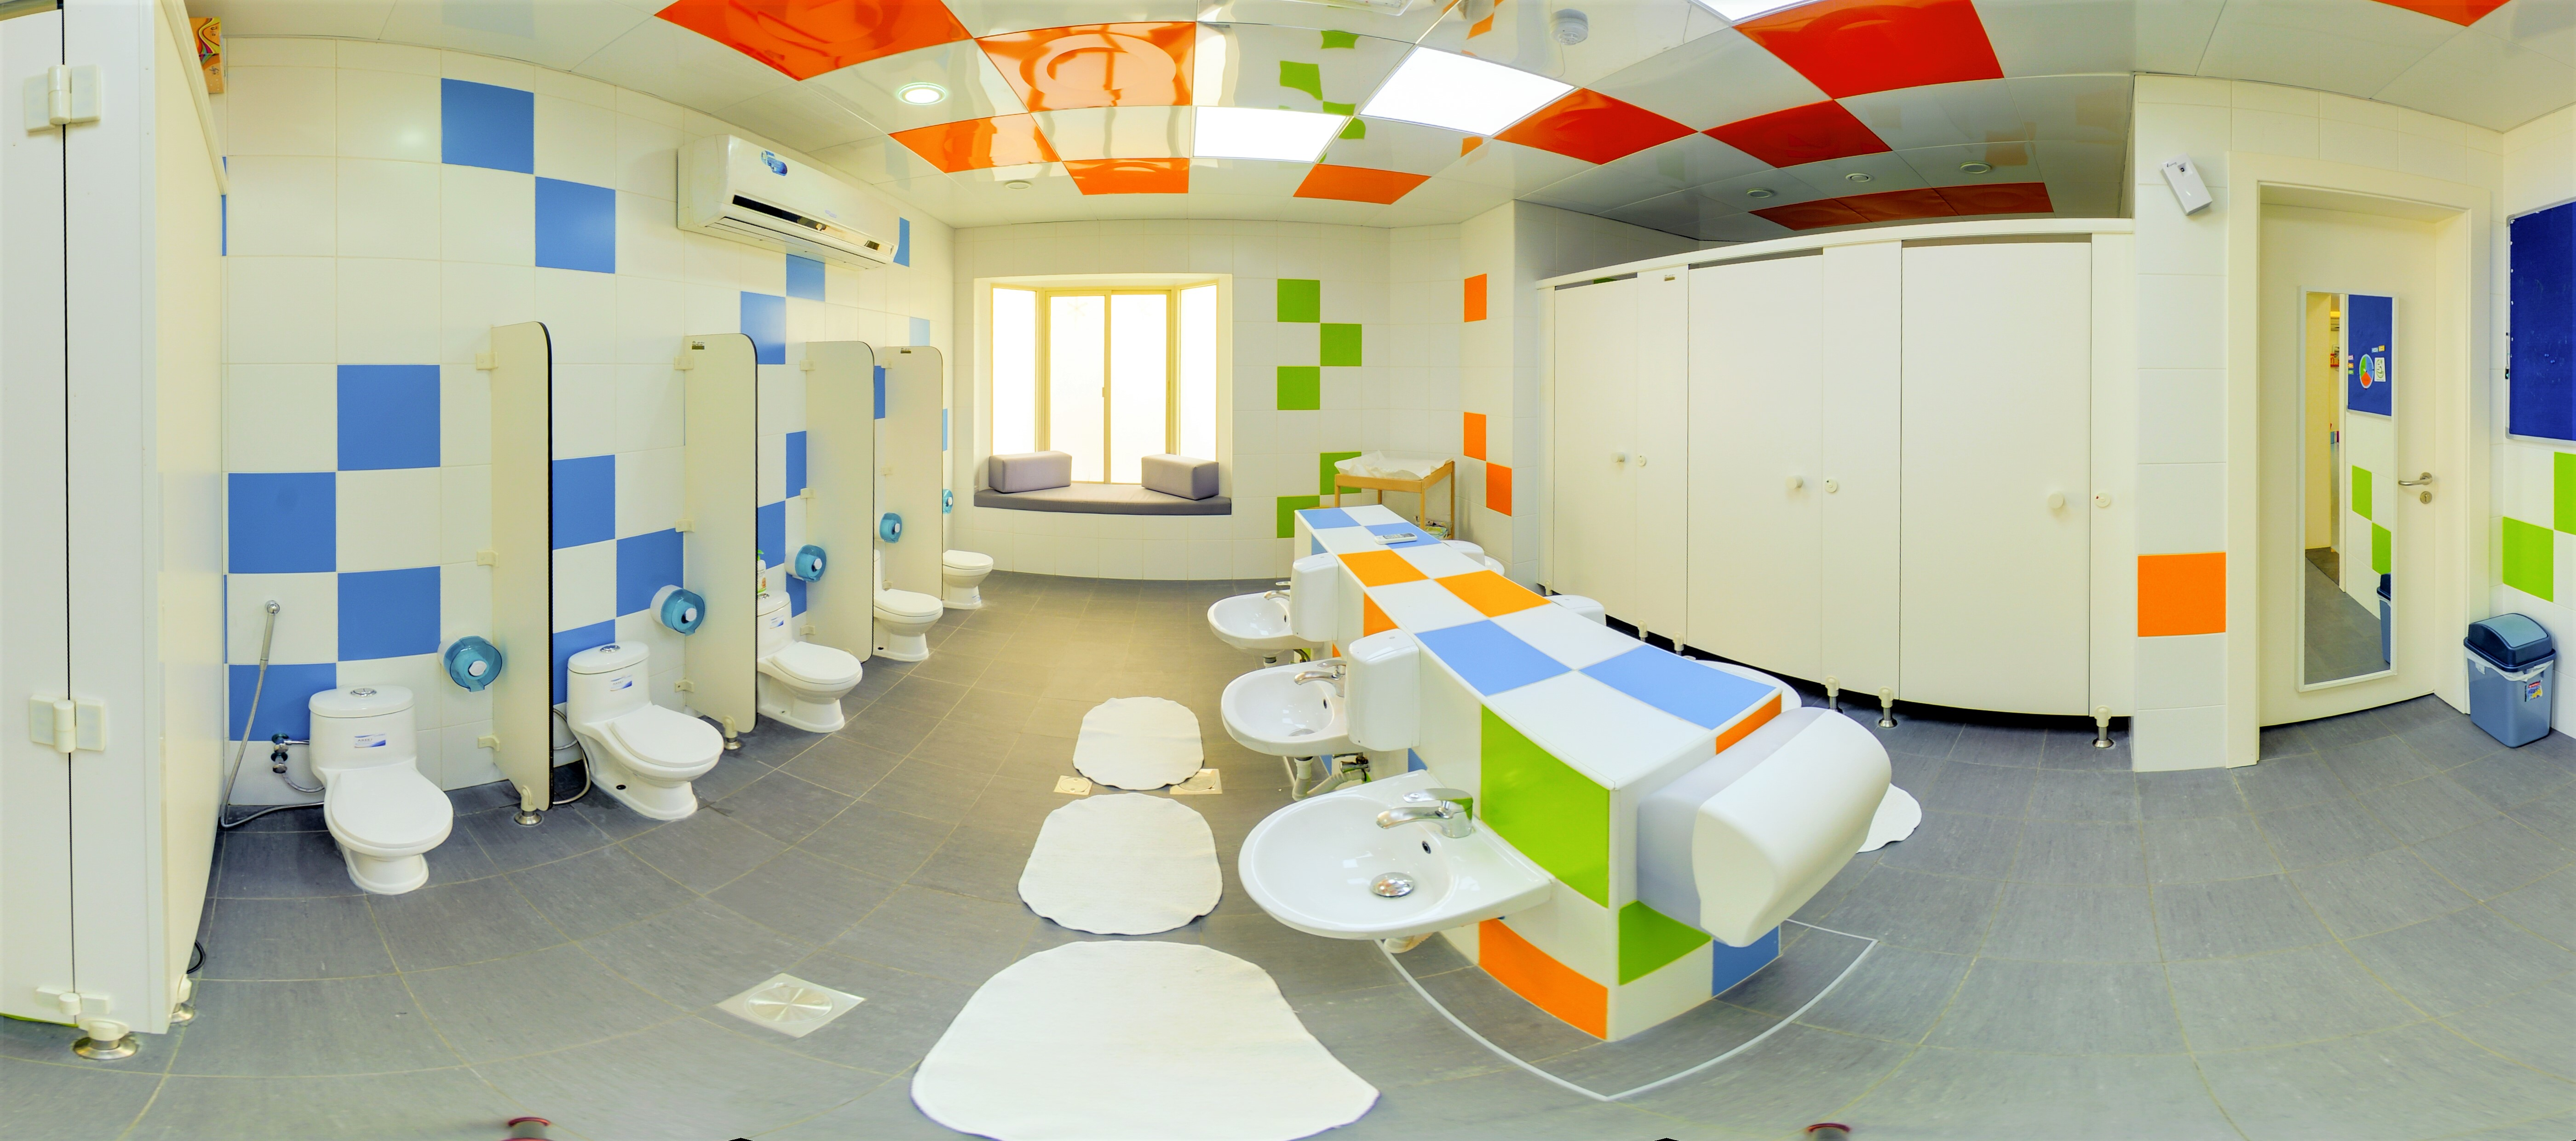 Clean Washroom for your child